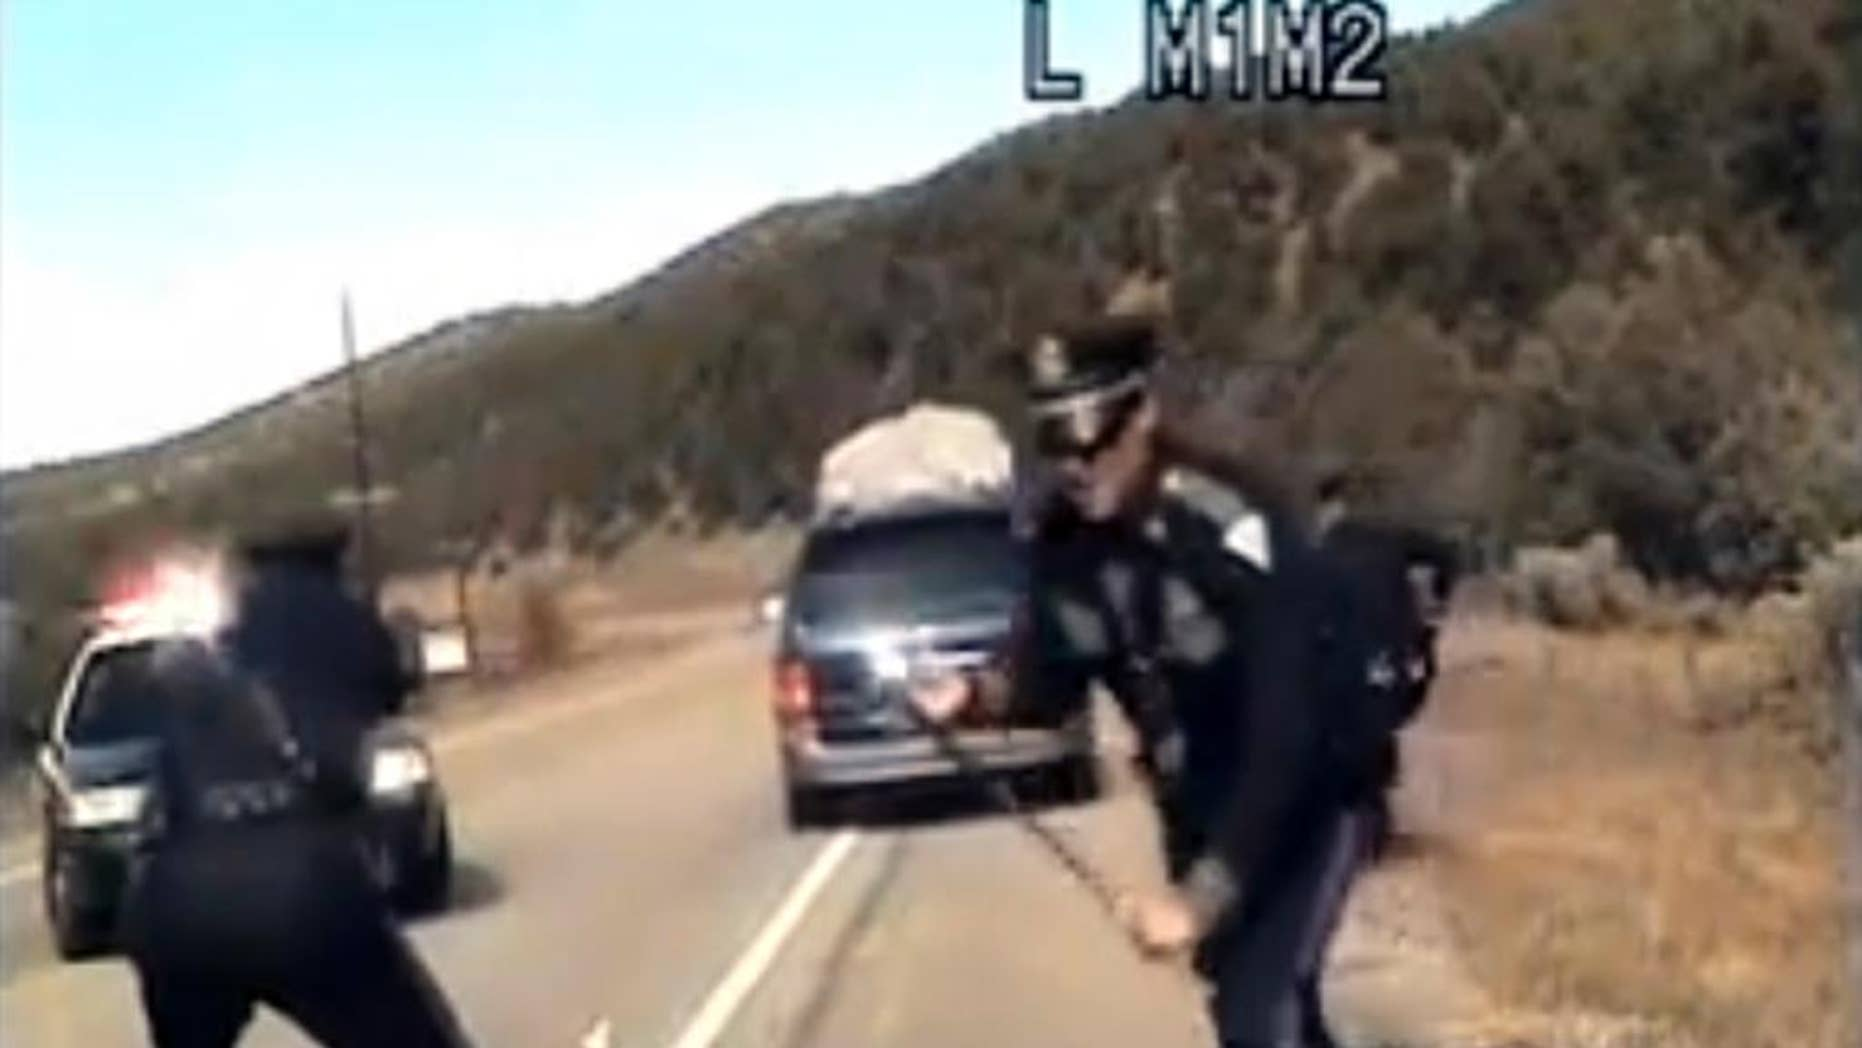 FILE - This file image from video provided by the New Mexico State Police shows three New Mexico State Police officers reacting as a minivan driven by motorist Oriana Farrell pulls away from a traffic stop on Oct. 28, 2013. New Mexico prosecutors aim to file new charges against Farrell in the chaotic traffic stop and chase last year during which a New Mexico State Police officer fired shots at her minivan full of children. The New Mexico Court of Appeals recently tossed Farrell's charges, including fleeing an officer and child abuse. (AP Photo/New Mexico State Police, File)